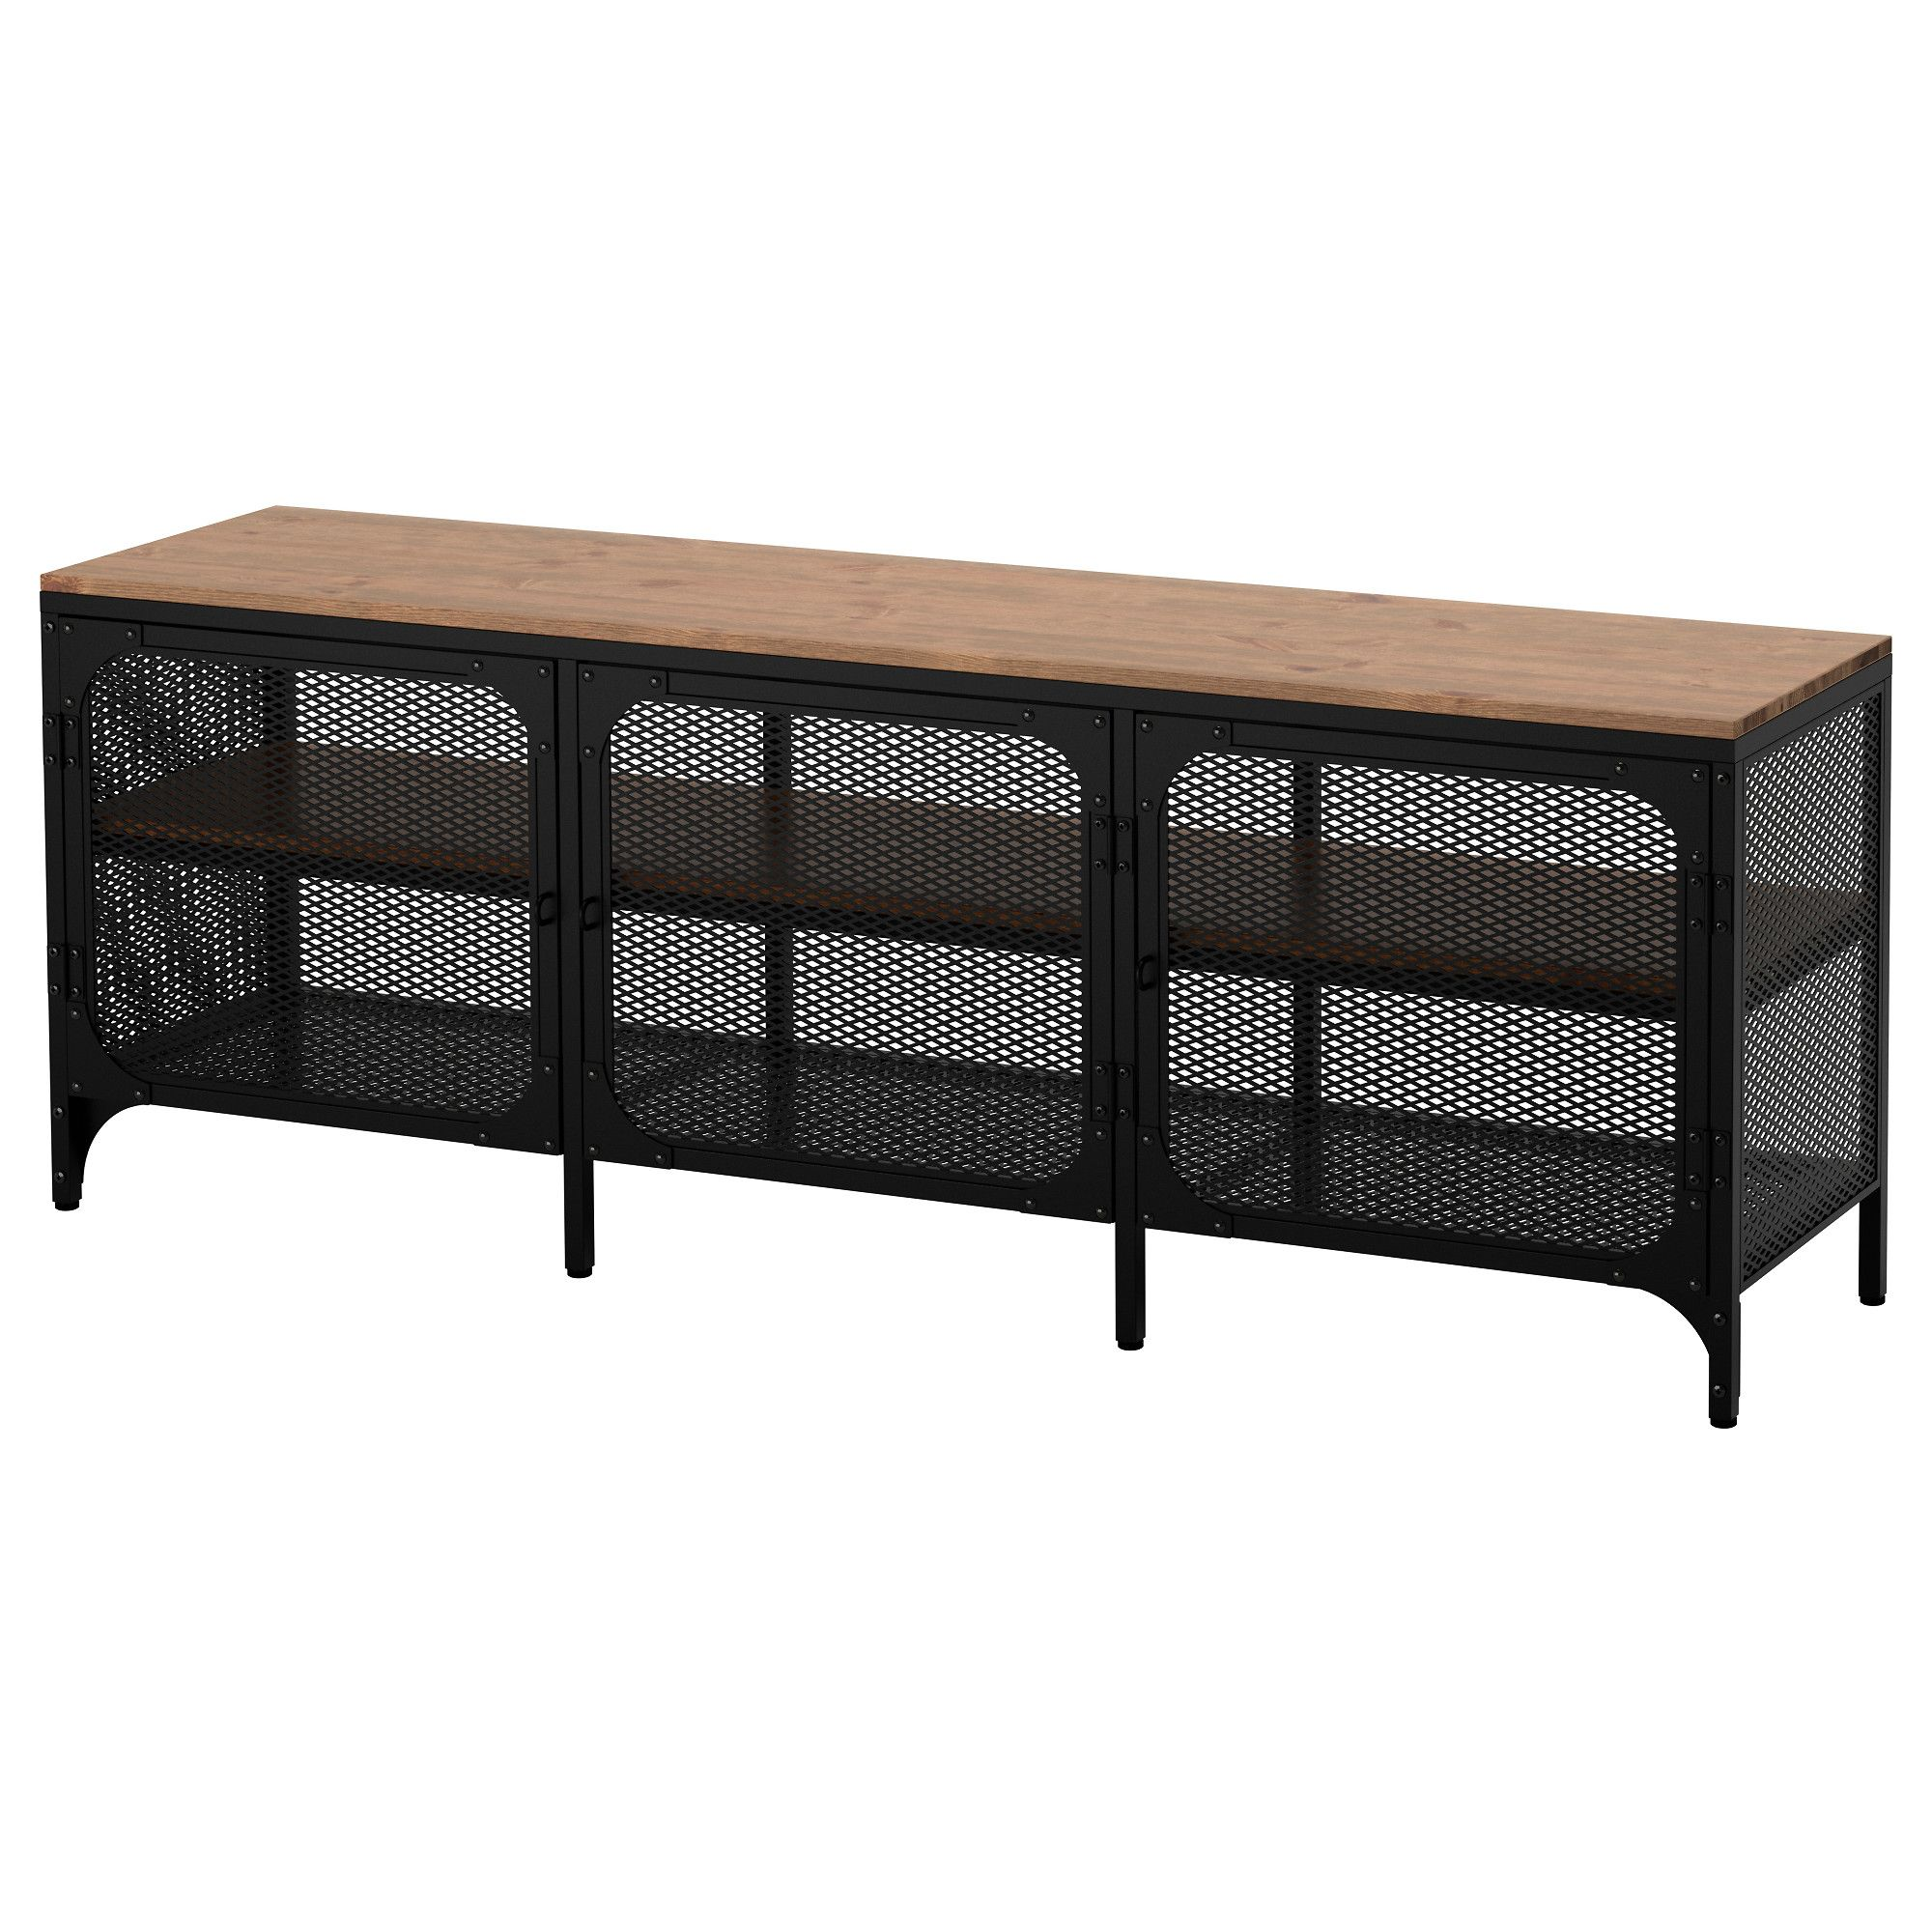 fj llbo tv bank schwarz jetzt bestellen unter https. Black Bedroom Furniture Sets. Home Design Ideas